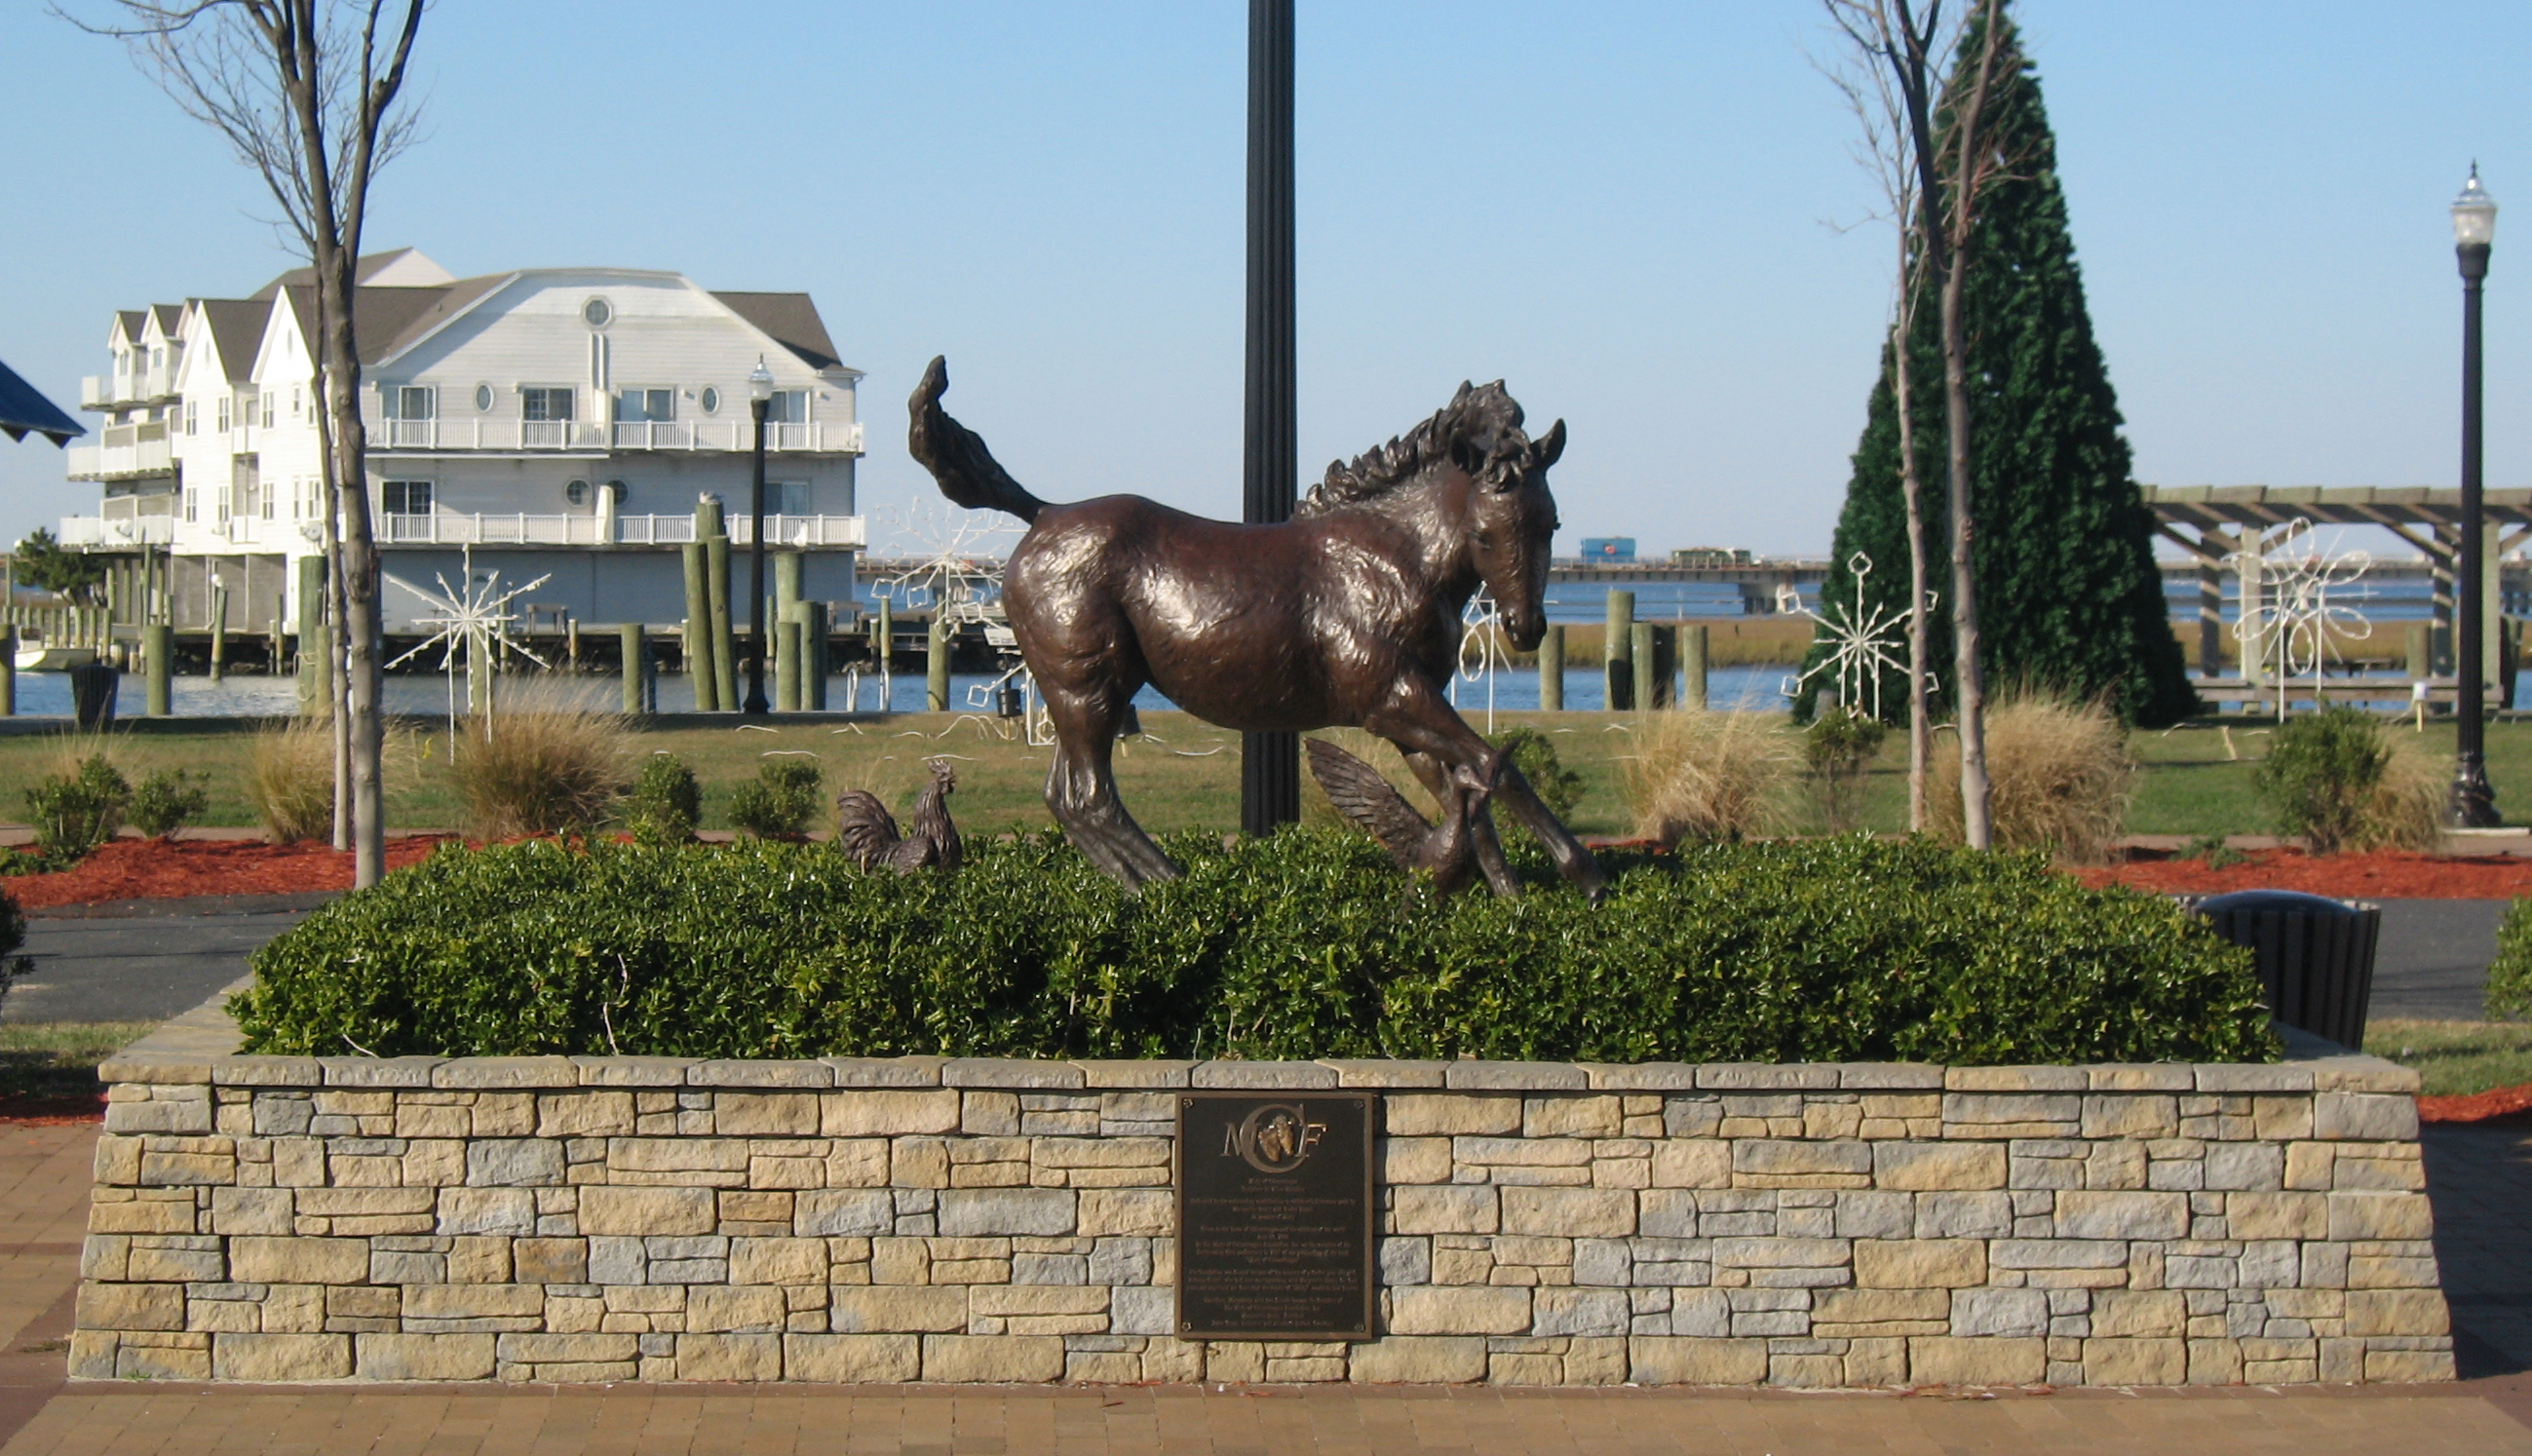 chincoteague online dating This may contain online profiles, dating websites, forgotten social media accounts, and other potentially embarrassing profiles  chincoteague island sherry bradford.